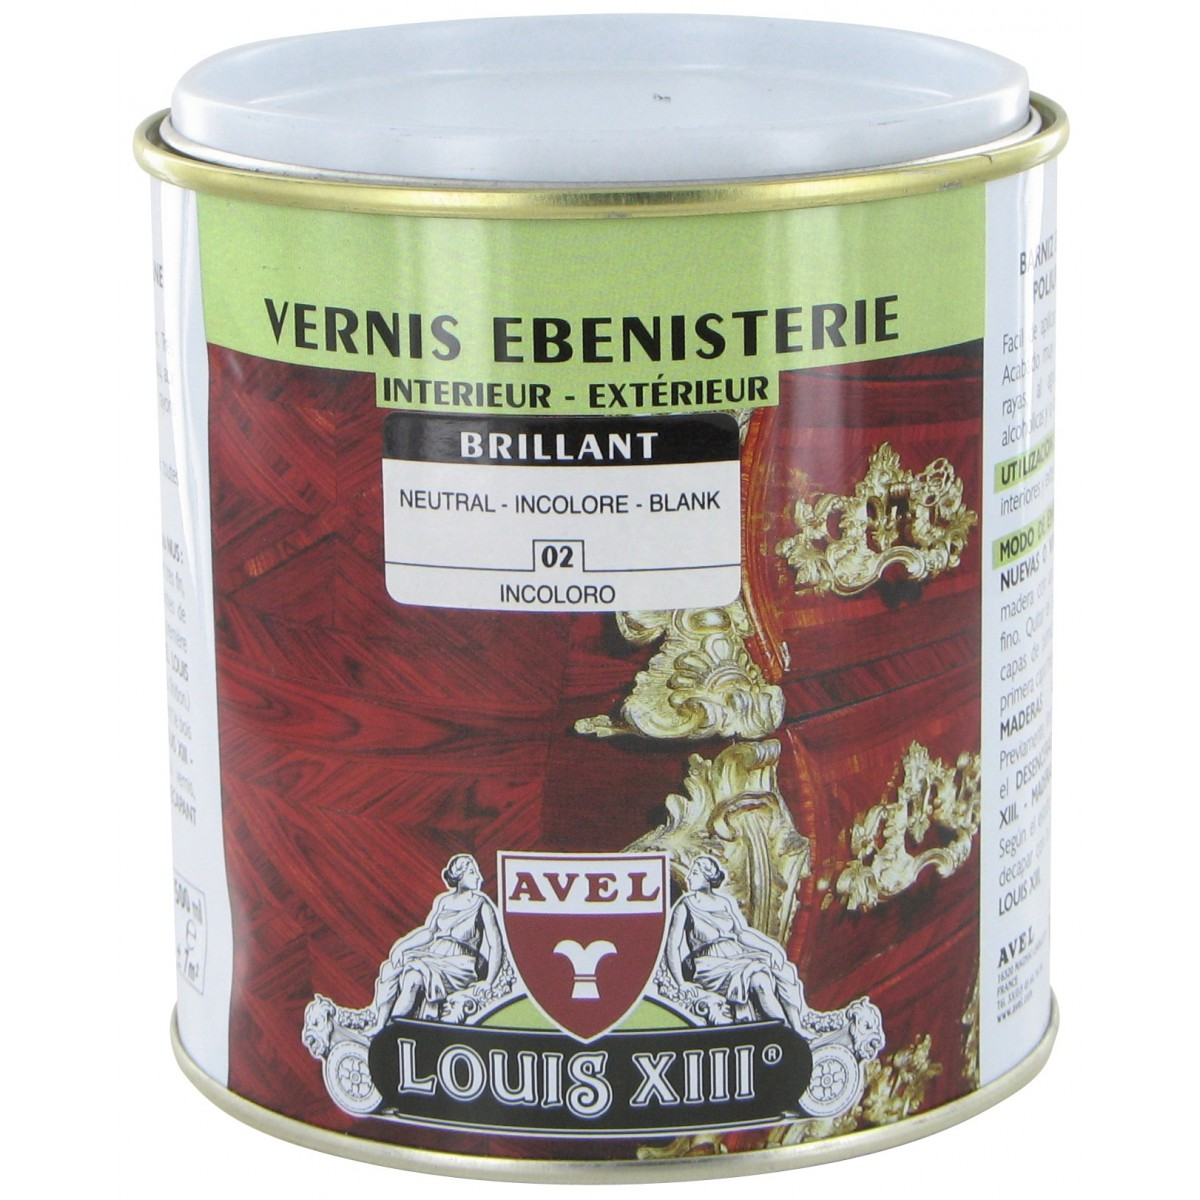 Vernis bois brillant 500 ml Avel Louis XIII - Incolore